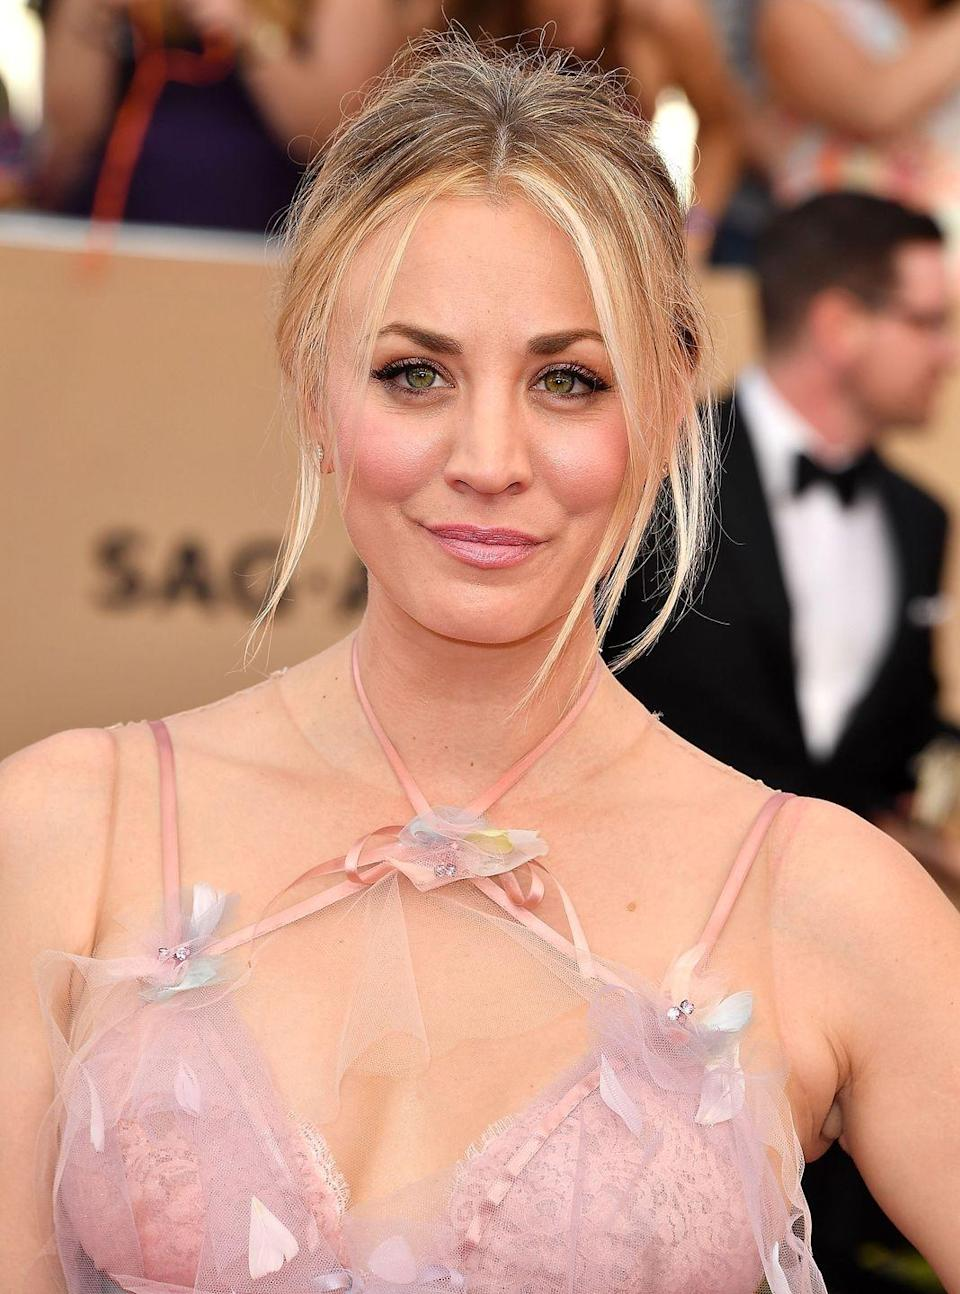 """<p>The <em>Big Bang Theory </em>star told <em><a href=""""https://www.womenshealthmag.com/life/kaley-cuoco-plastic-surgery"""" rel=""""nofollow noopener"""" target=""""_blank"""" data-ylk=""""slk:W"""" class=""""link rapid-noclick-resp"""">W</a></em><em><a href=""""https://www.womenshealthmag.com/life/kaley-cuoco-plastic-surgery"""" rel=""""nofollow noopener"""" target=""""_blank"""" data-ylk=""""slk:omen's Health"""" class=""""link rapid-noclick-resp"""">omen's Health</a></em> that she had a nose job, breast augmentation (""""the best thing I ever did,"""" she said), and a round of fillers. """"As much as you want to love your inner self, I'm sorry, you also want to look good,"""" she said. """"I don't think you should do it for a man or anyone else, but if it makes you feel confident, that's amazing.""""</p>"""